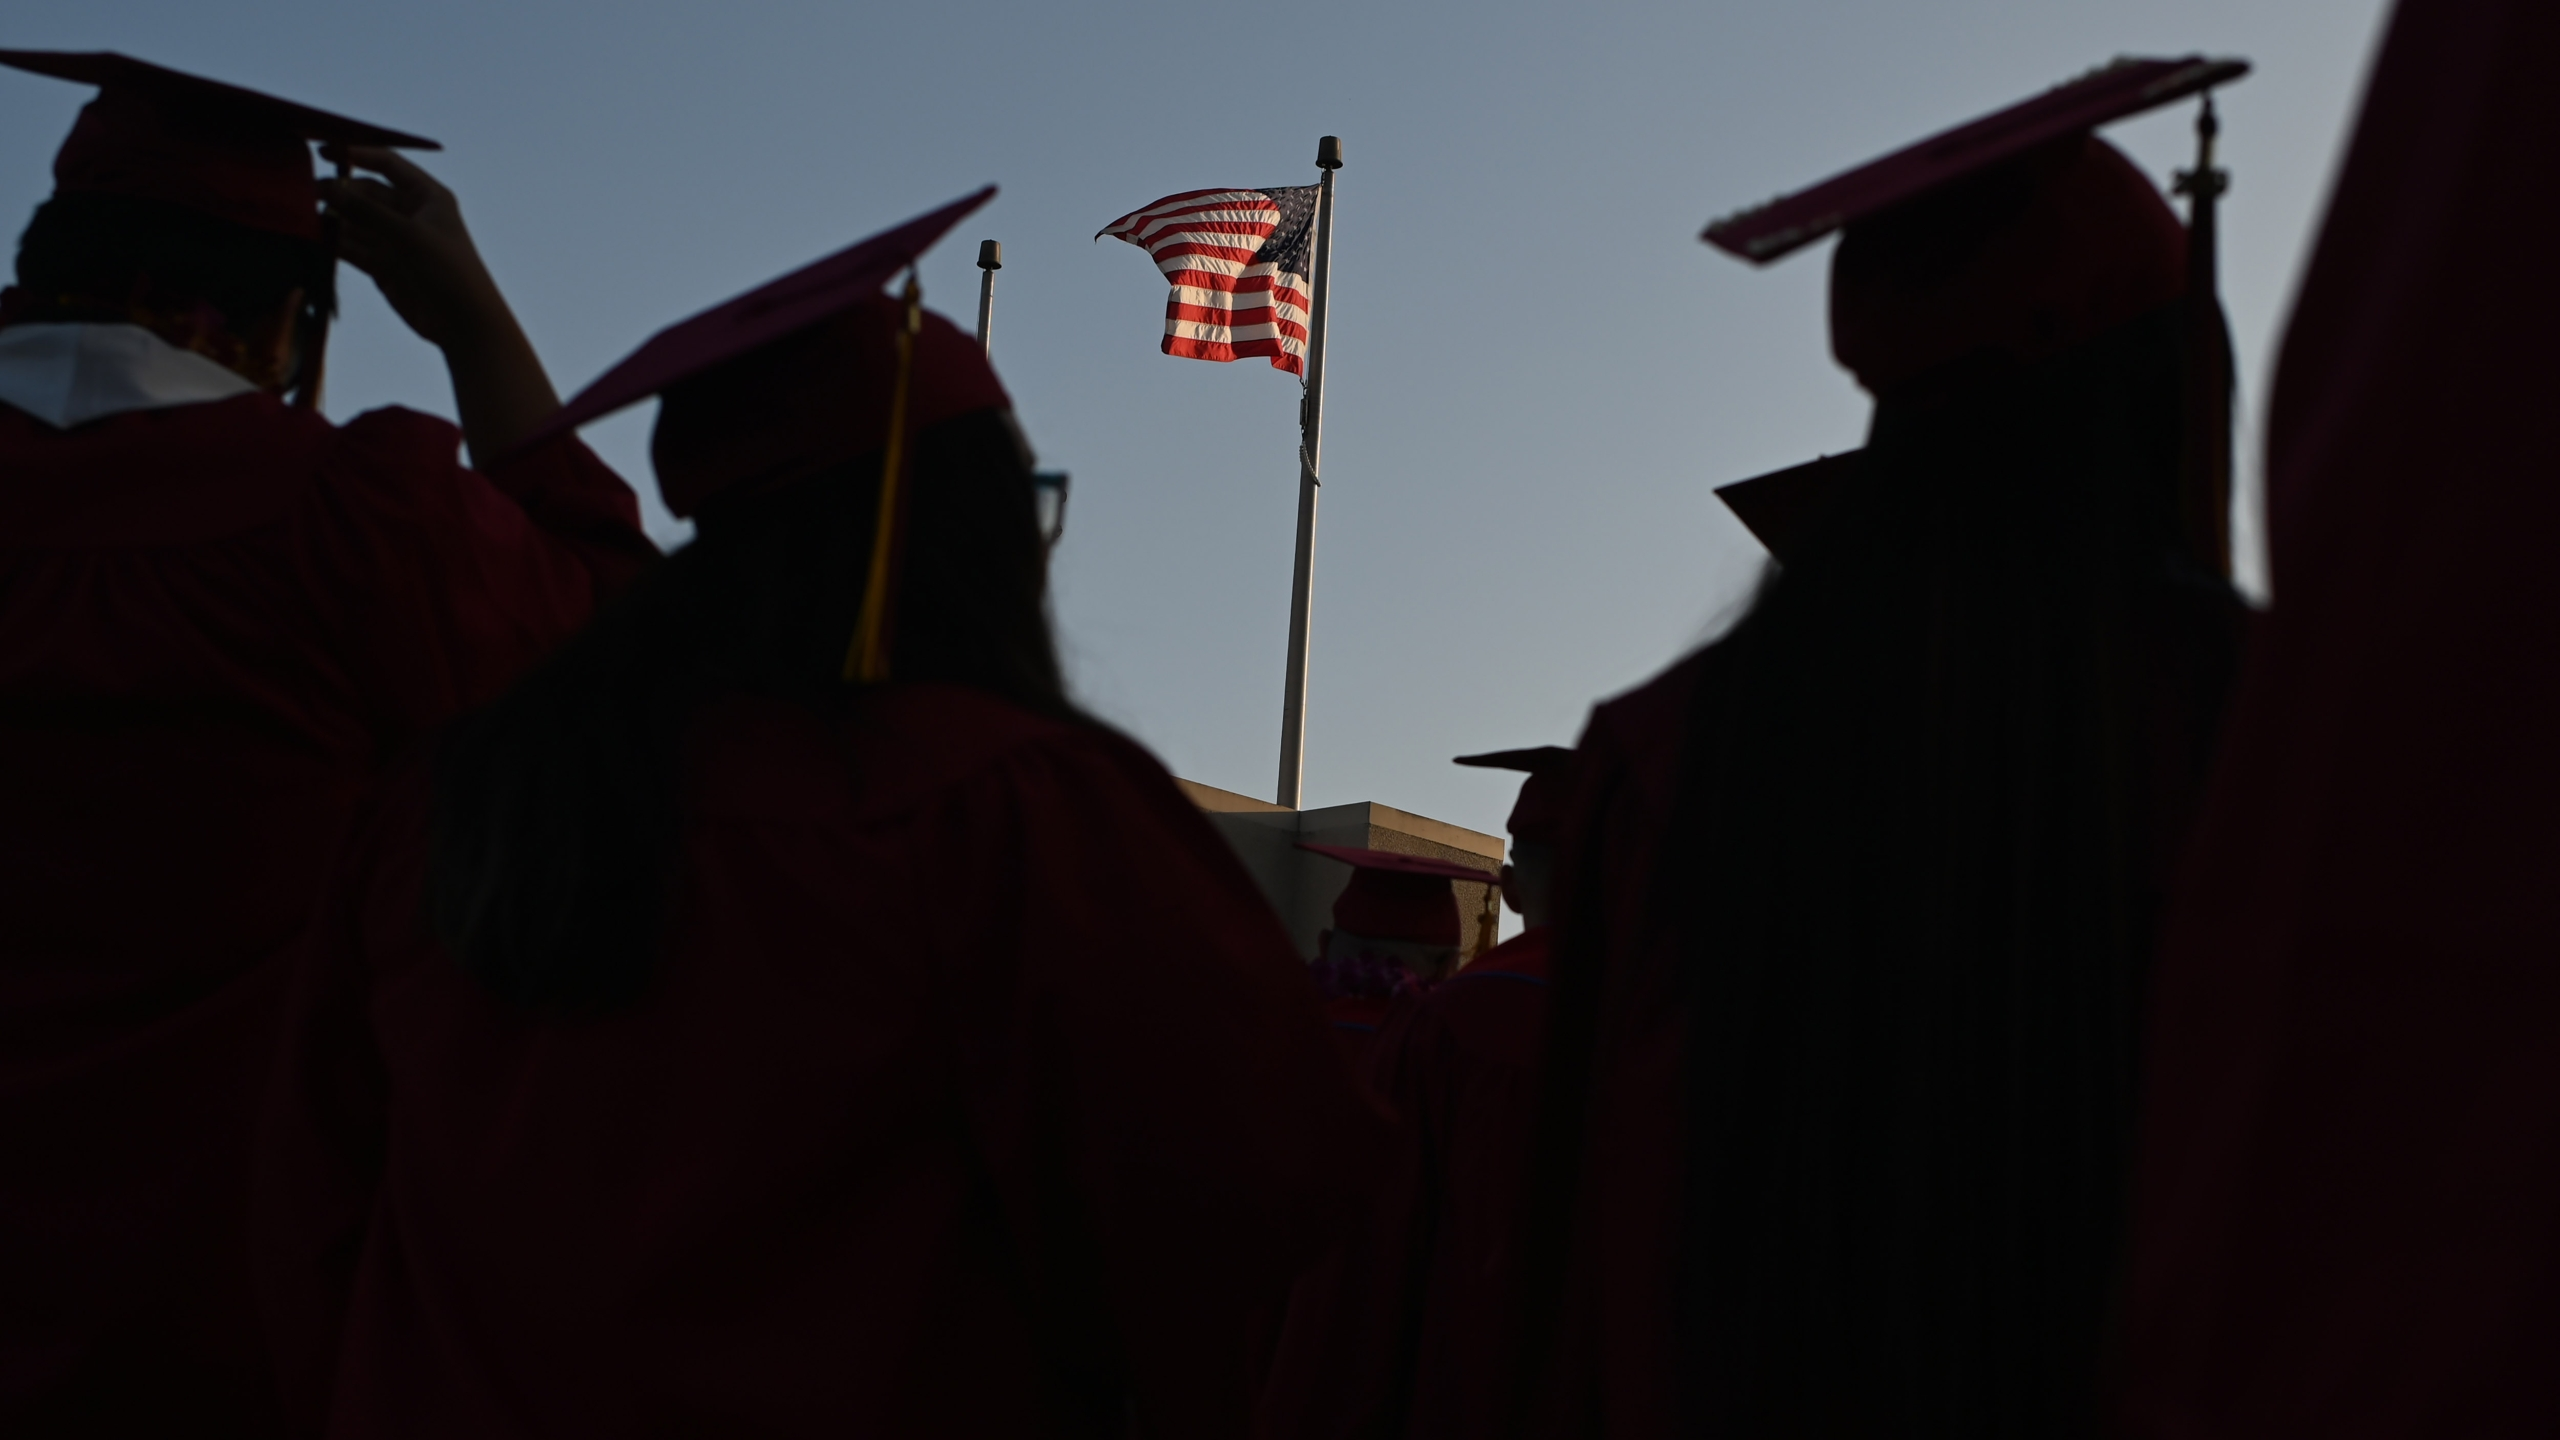 A U.S. flag flies above a building at a Pasadena City College graduation ceremony on June 14, 2019, in Pasadena. (ROBYN BECK/AFP via Getty Images)